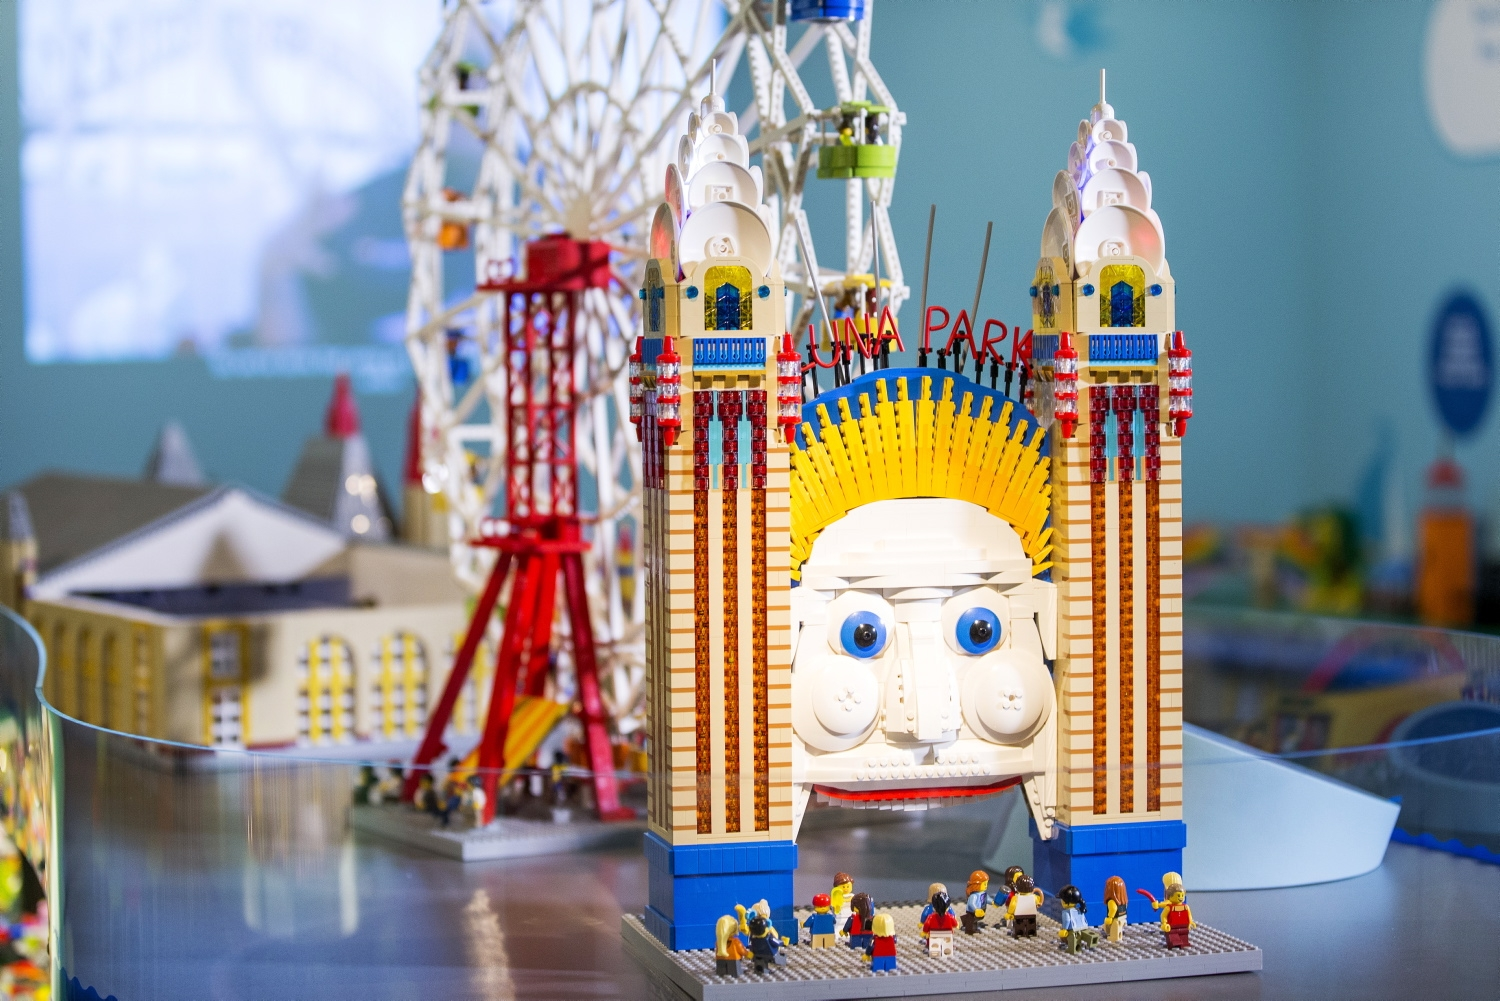 Exhibition table of bright and colourful lego models of Luna Park, including entrance face, ferris wheel, medieval-like crystal place and roller coaster